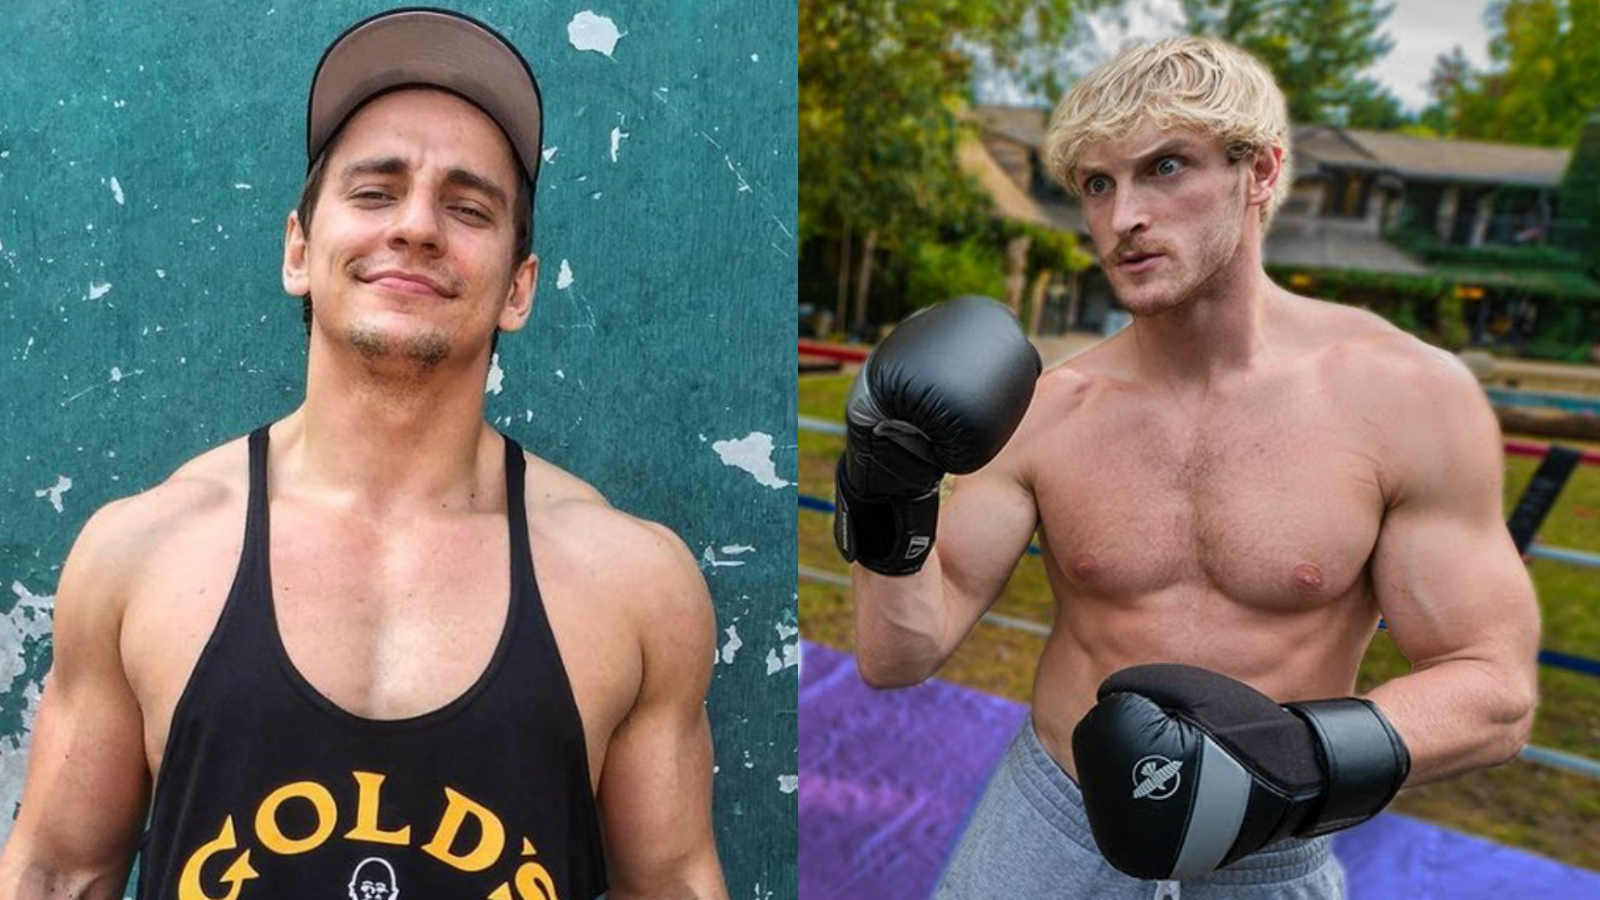 Twitter: Vitaly / YouTube: Logan Paul